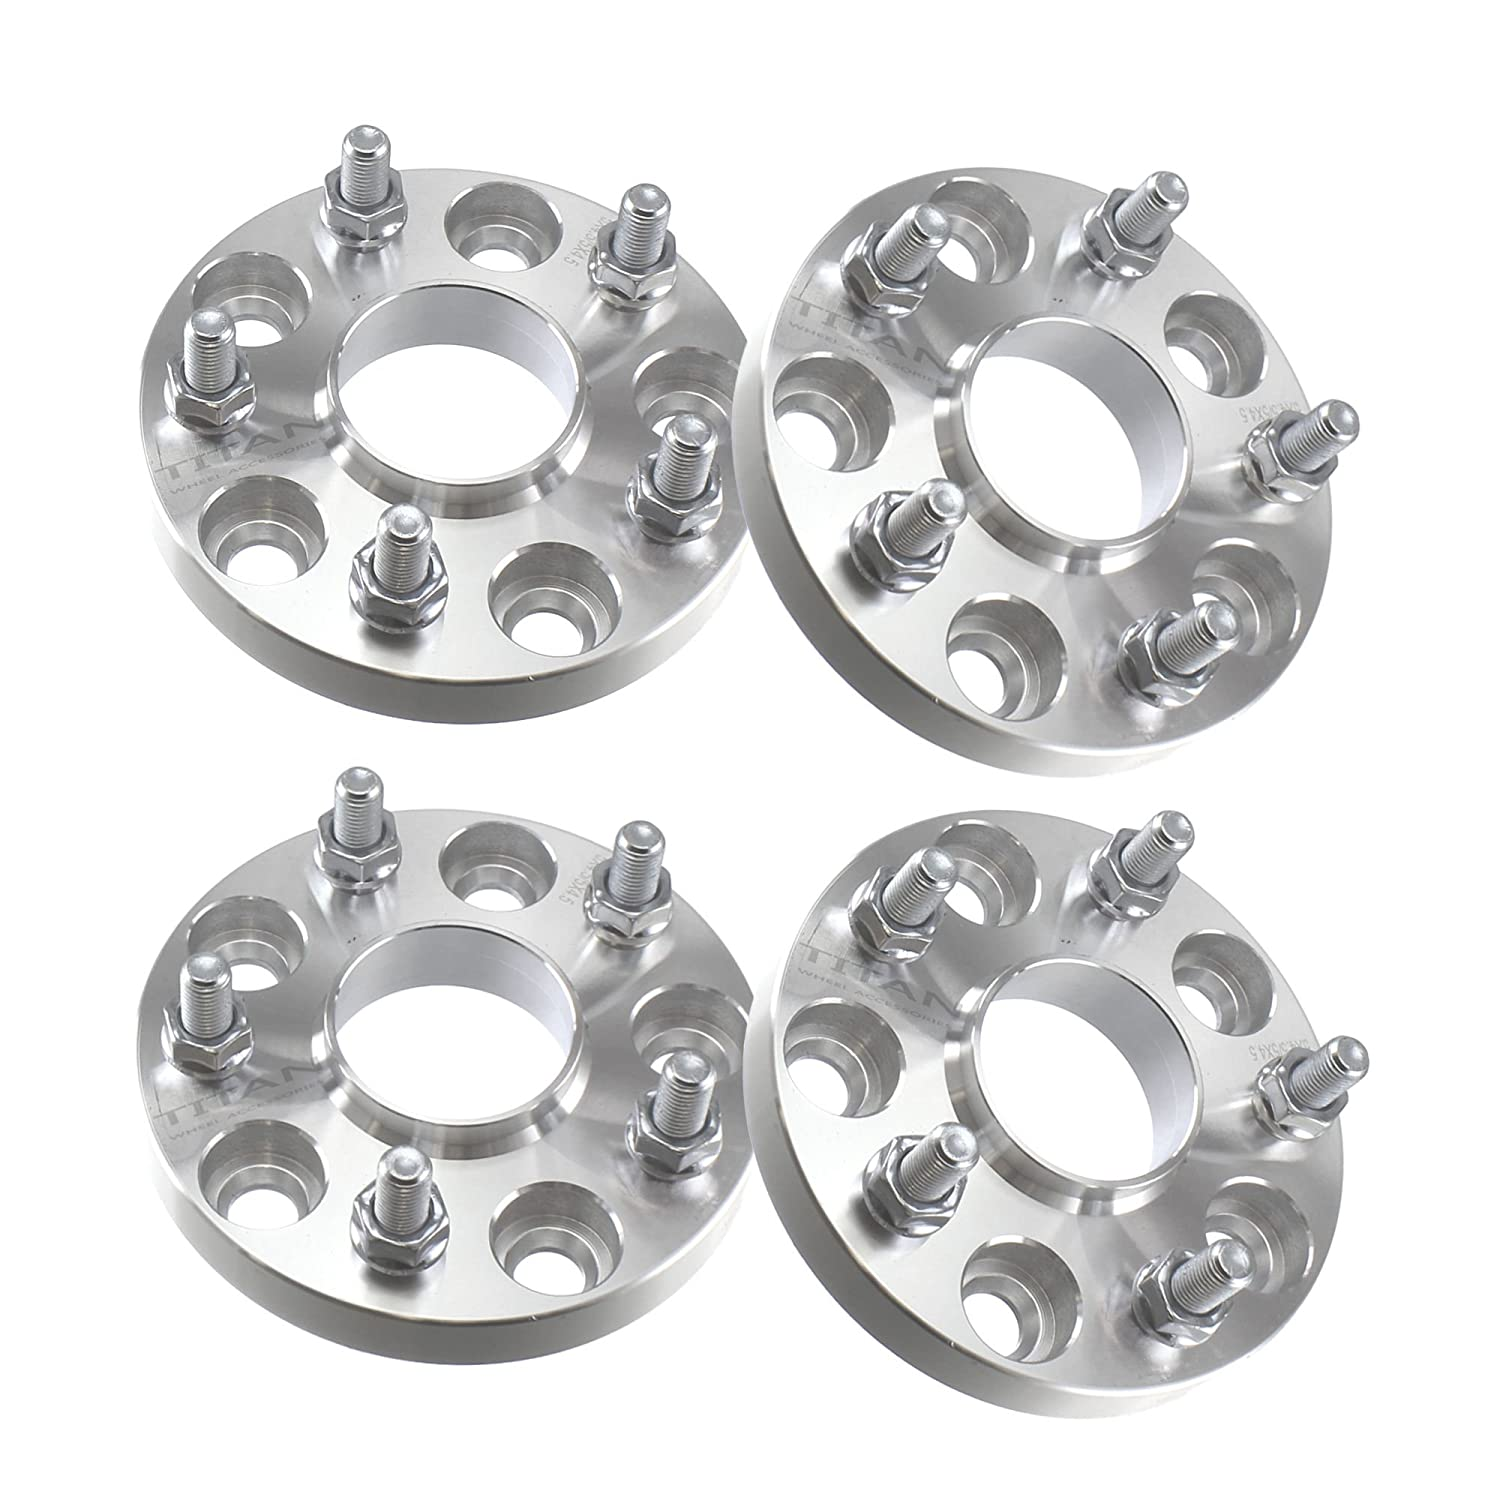 (4) 20mm 5x114.3 Hubcentric Wheel Spacers (67.1mm Bore) Fits Mitsubishi Lancer Evo & Others Titan Wheel Accessories